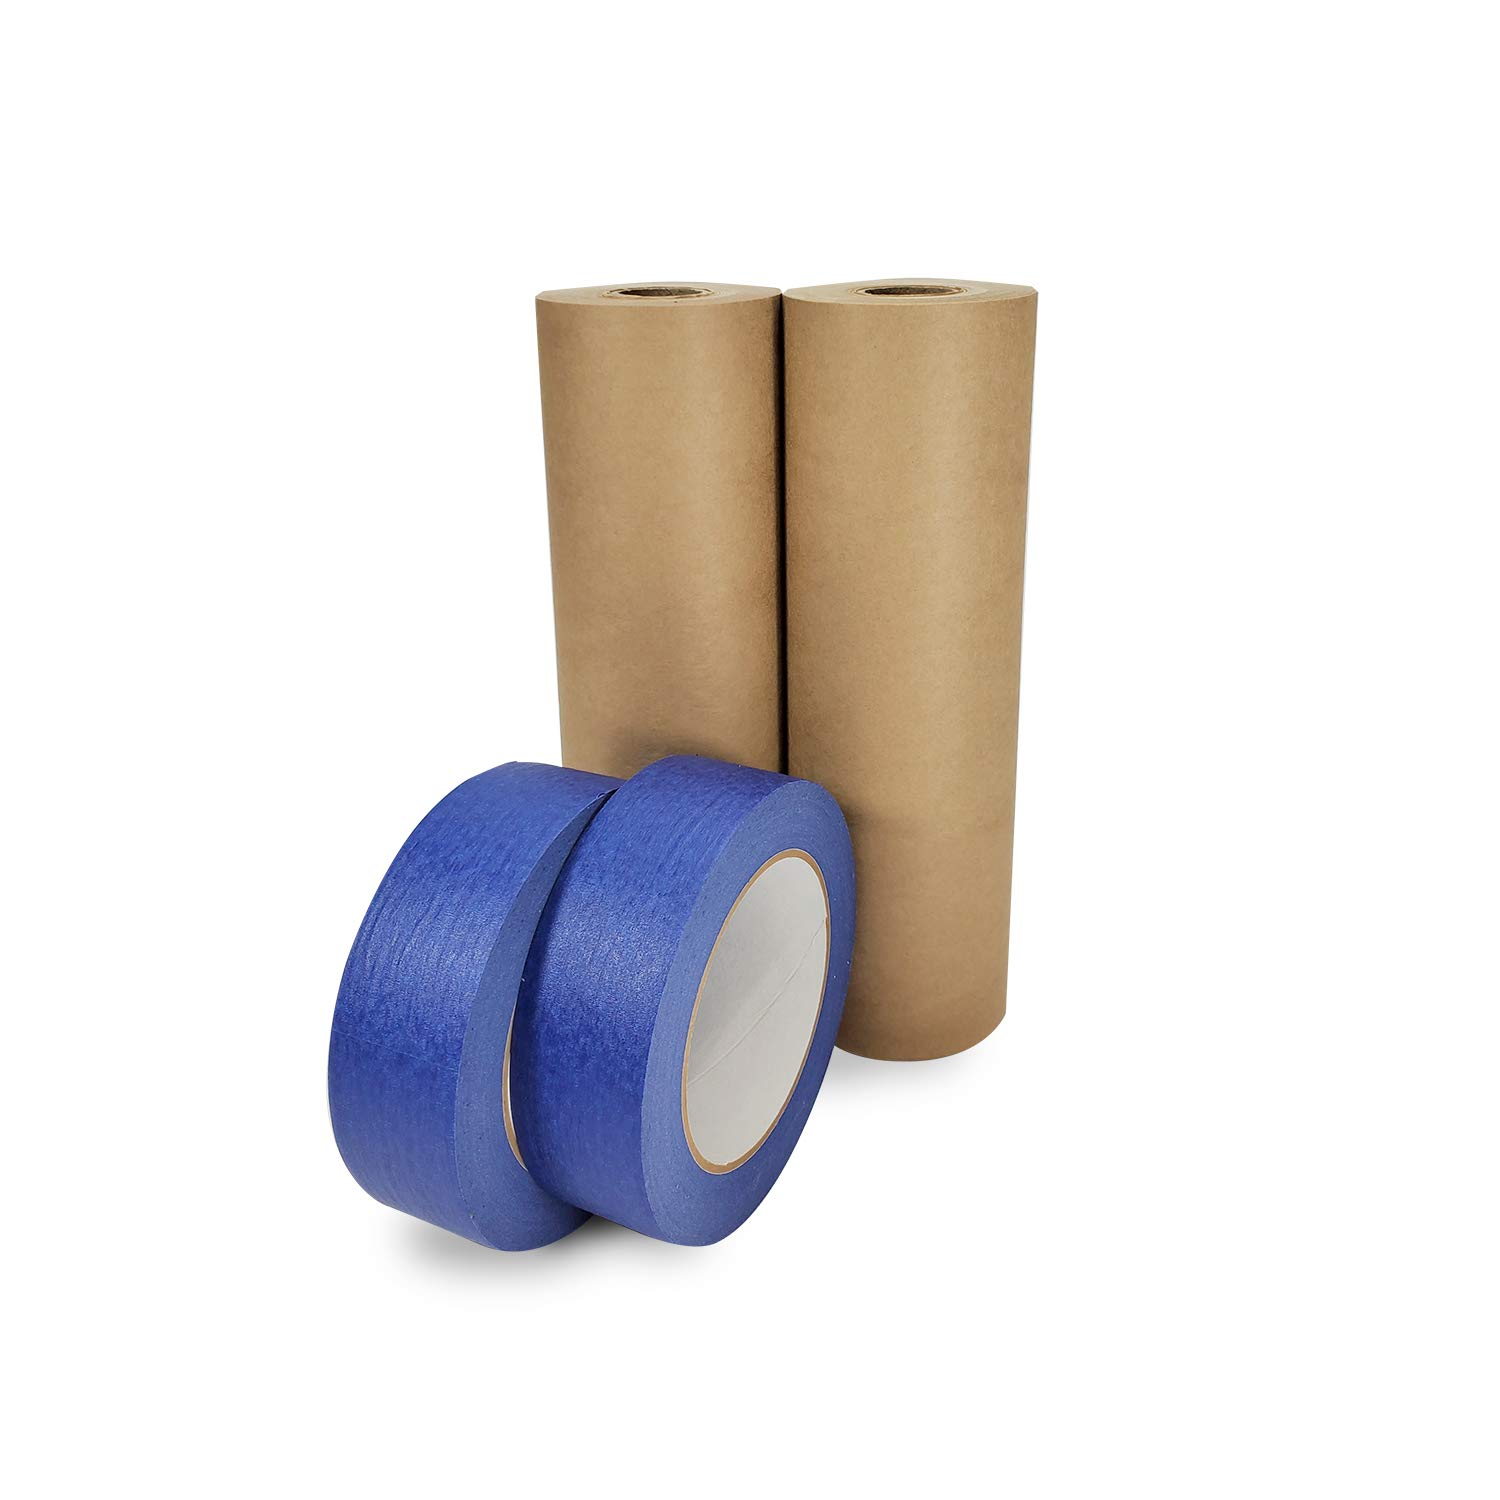 IDL Packaging Masking Paper with Tape Rolls. Brown Masking Paper Roll - 9